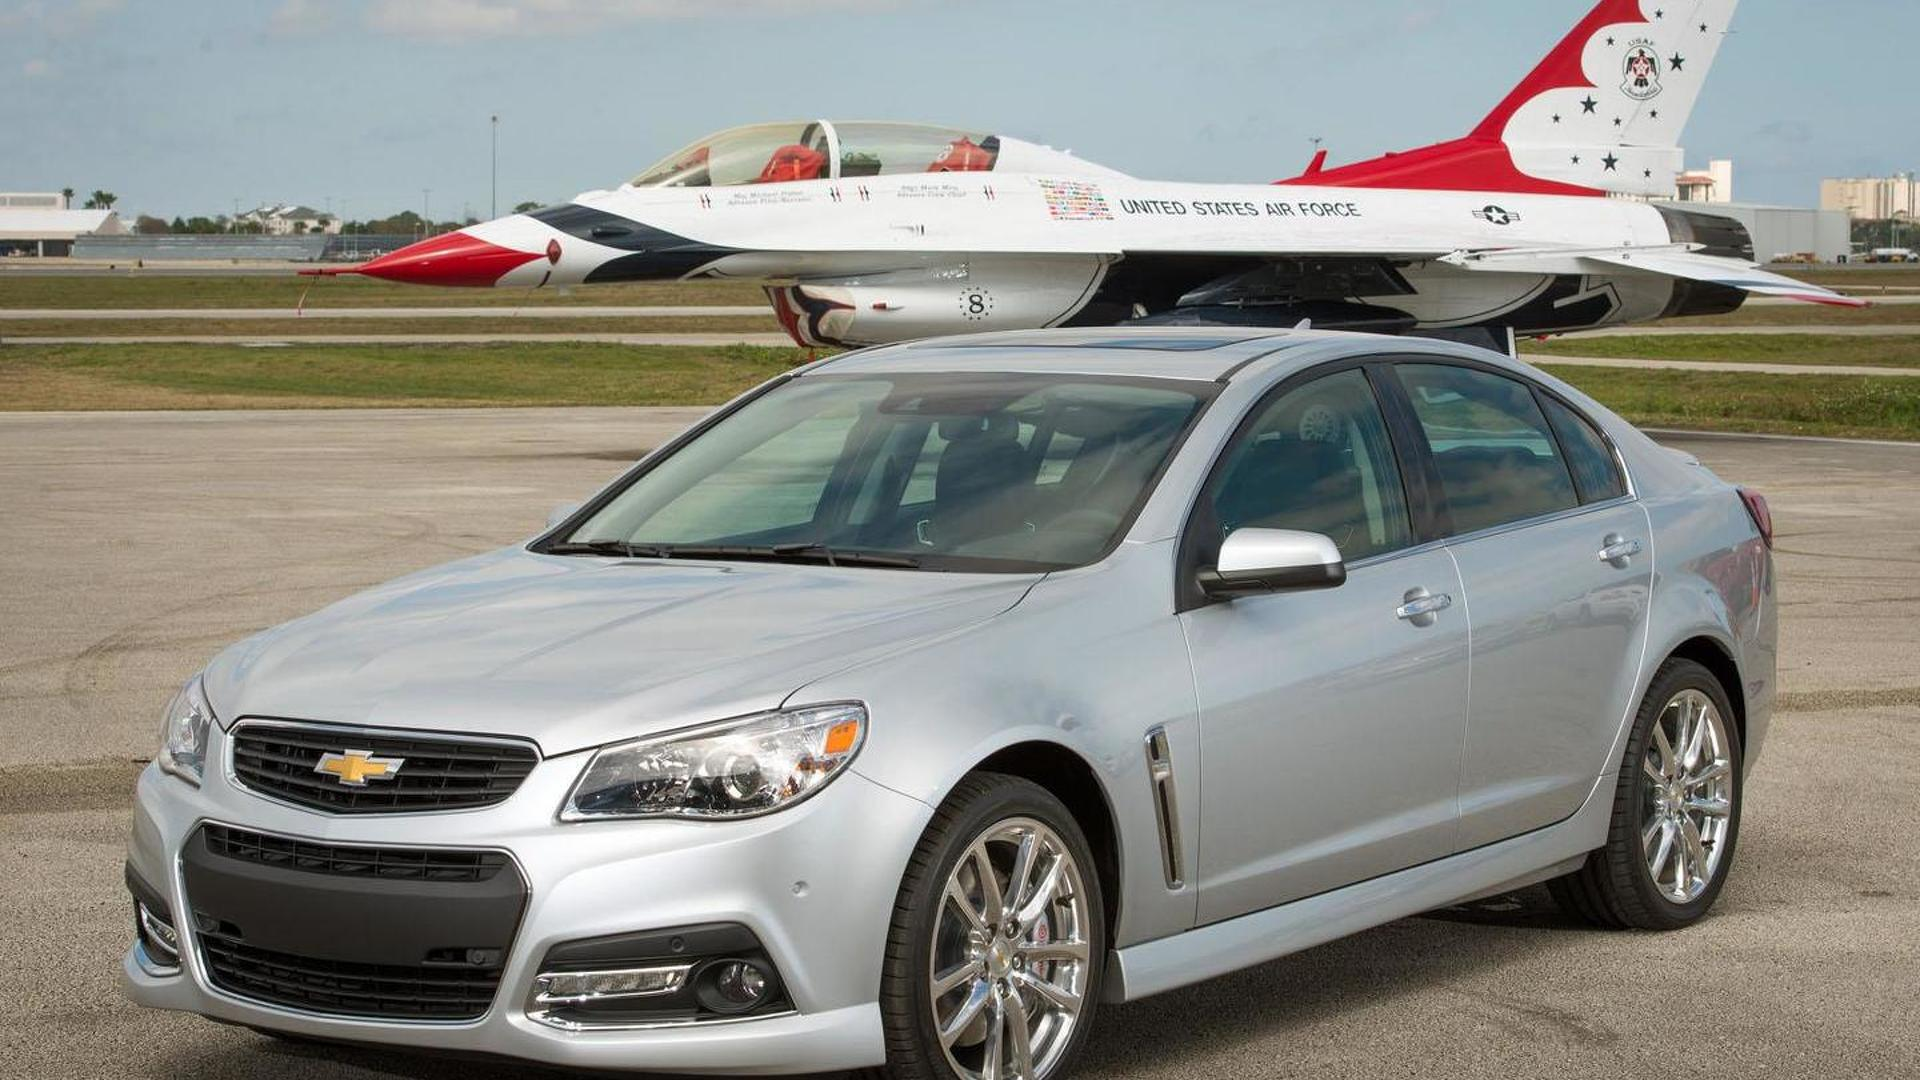 Next-generation Chevrolet SS could be based on the Alpha platform, built in the U.S. - report